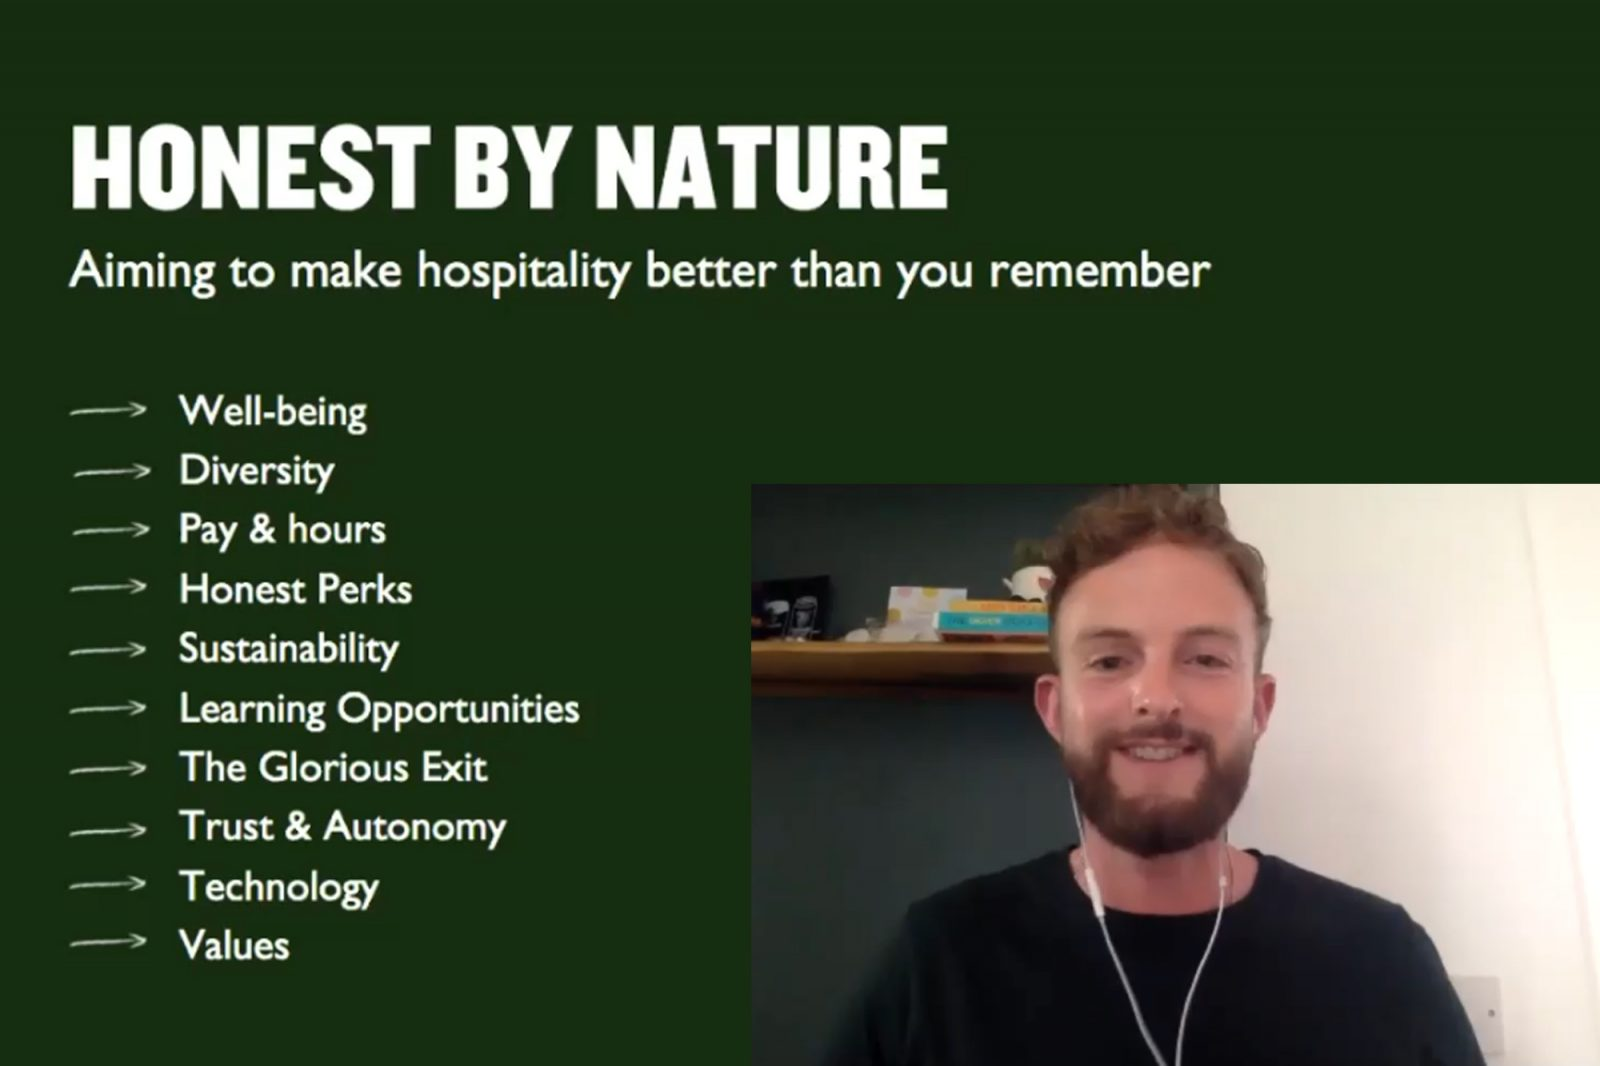 The Honest Life - Our Movement to Make Working in Hospitality Better Than You Remember